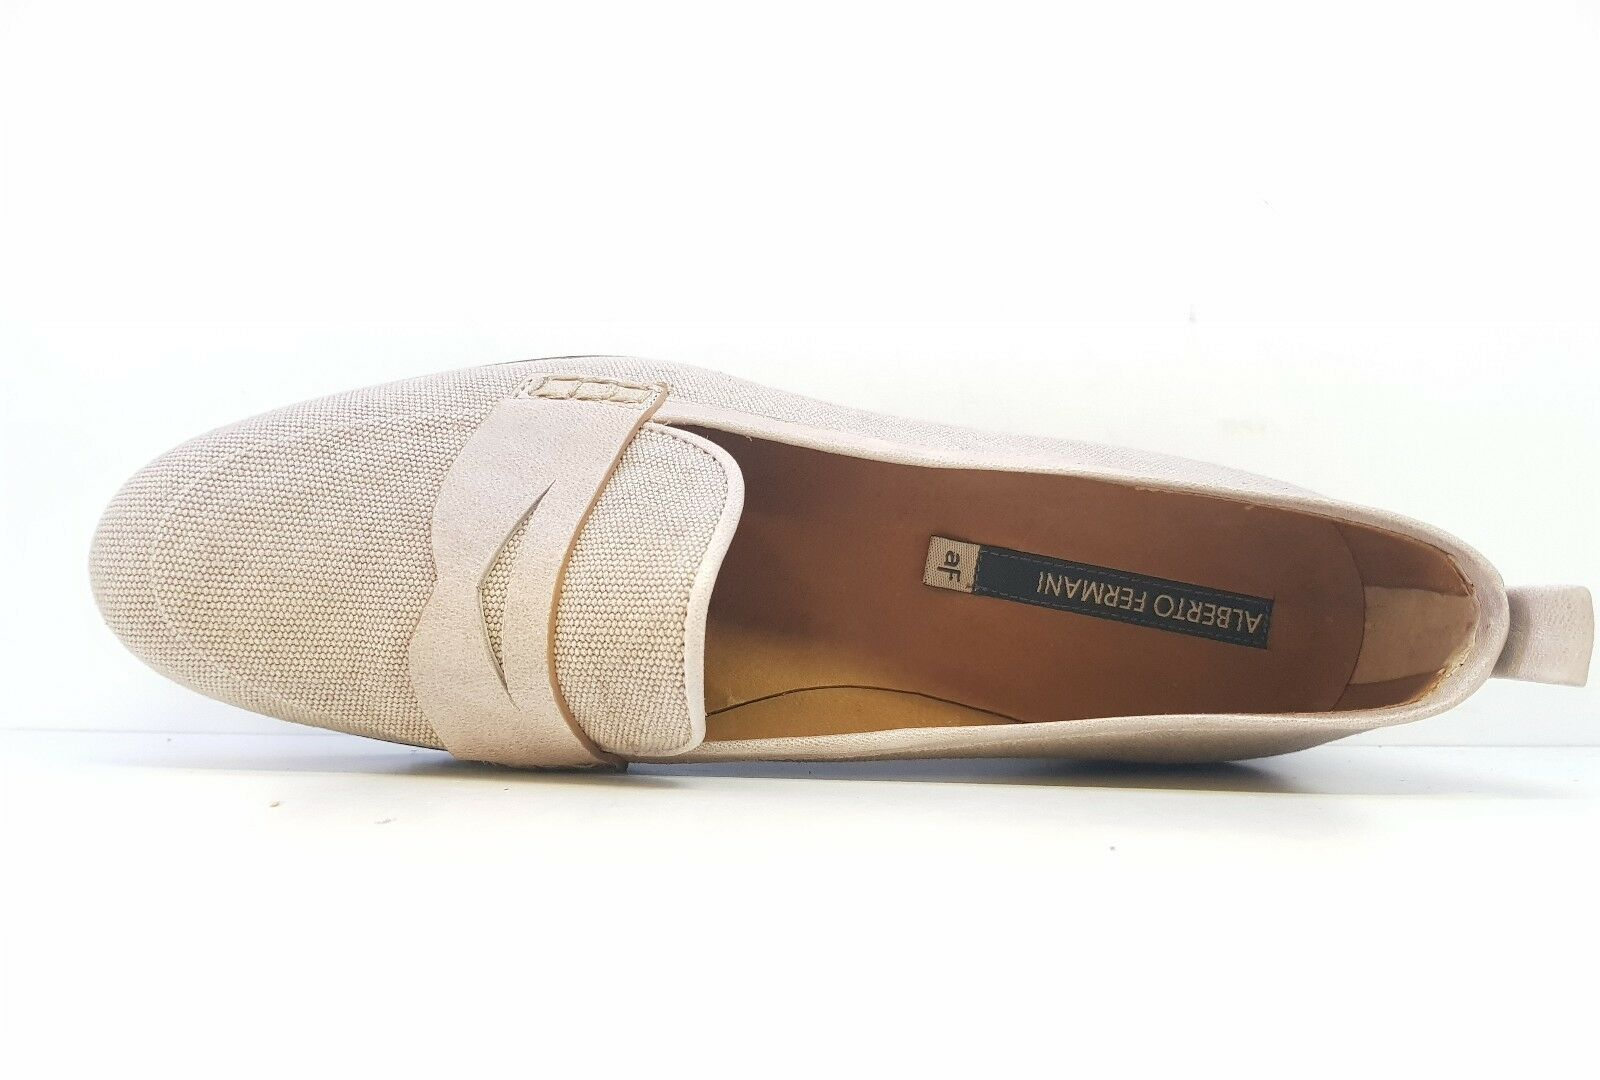 ALBERTO FERMANI LADIES HEEL LOAFERS SIZE EU 37 37 37 2c3158